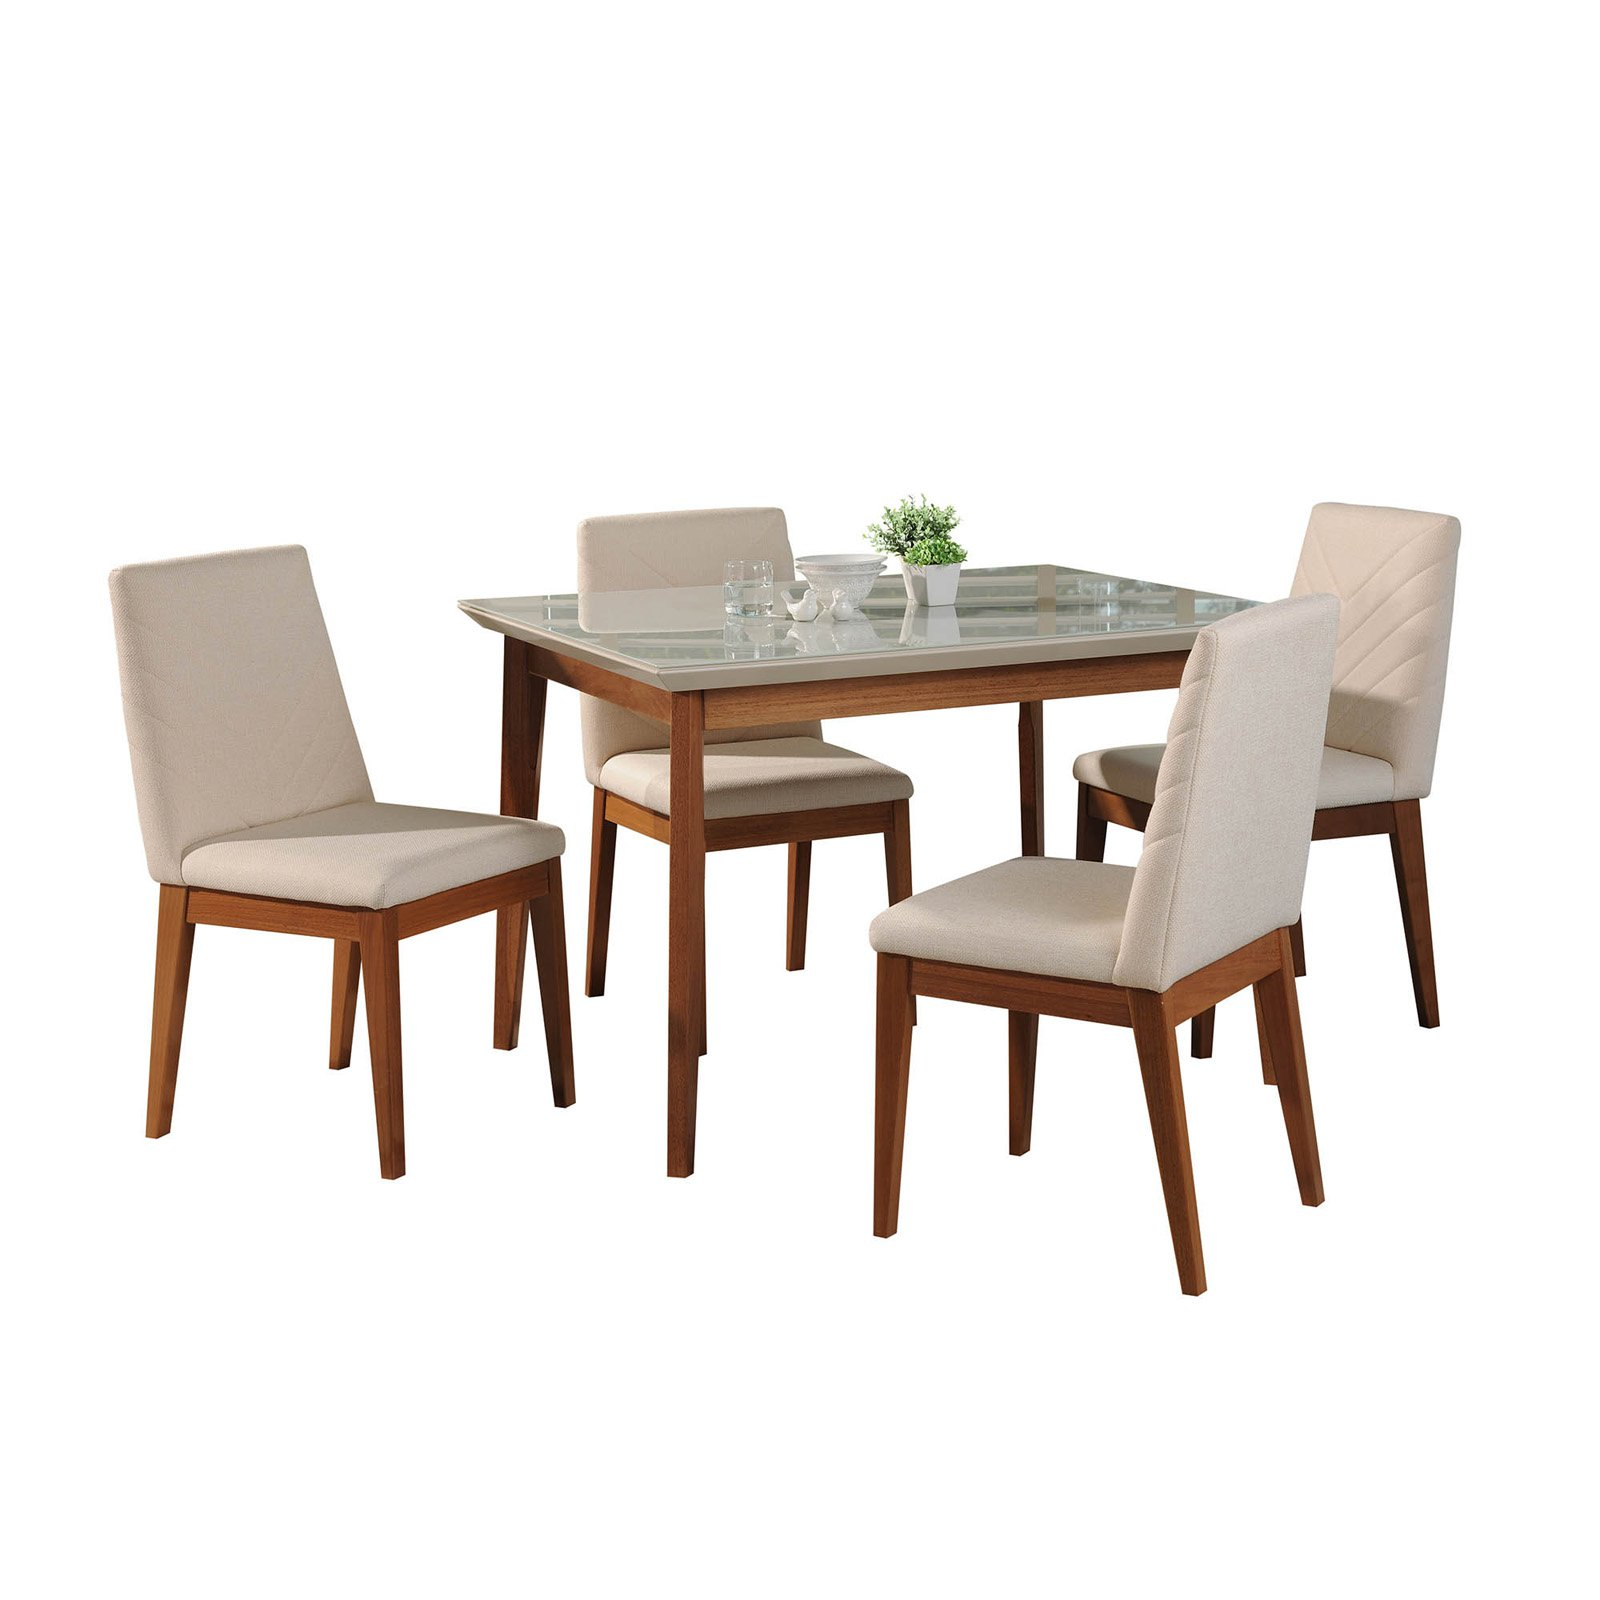 Manhattan Comfort Lillian and Catherine 5 Piece Dining Table Set